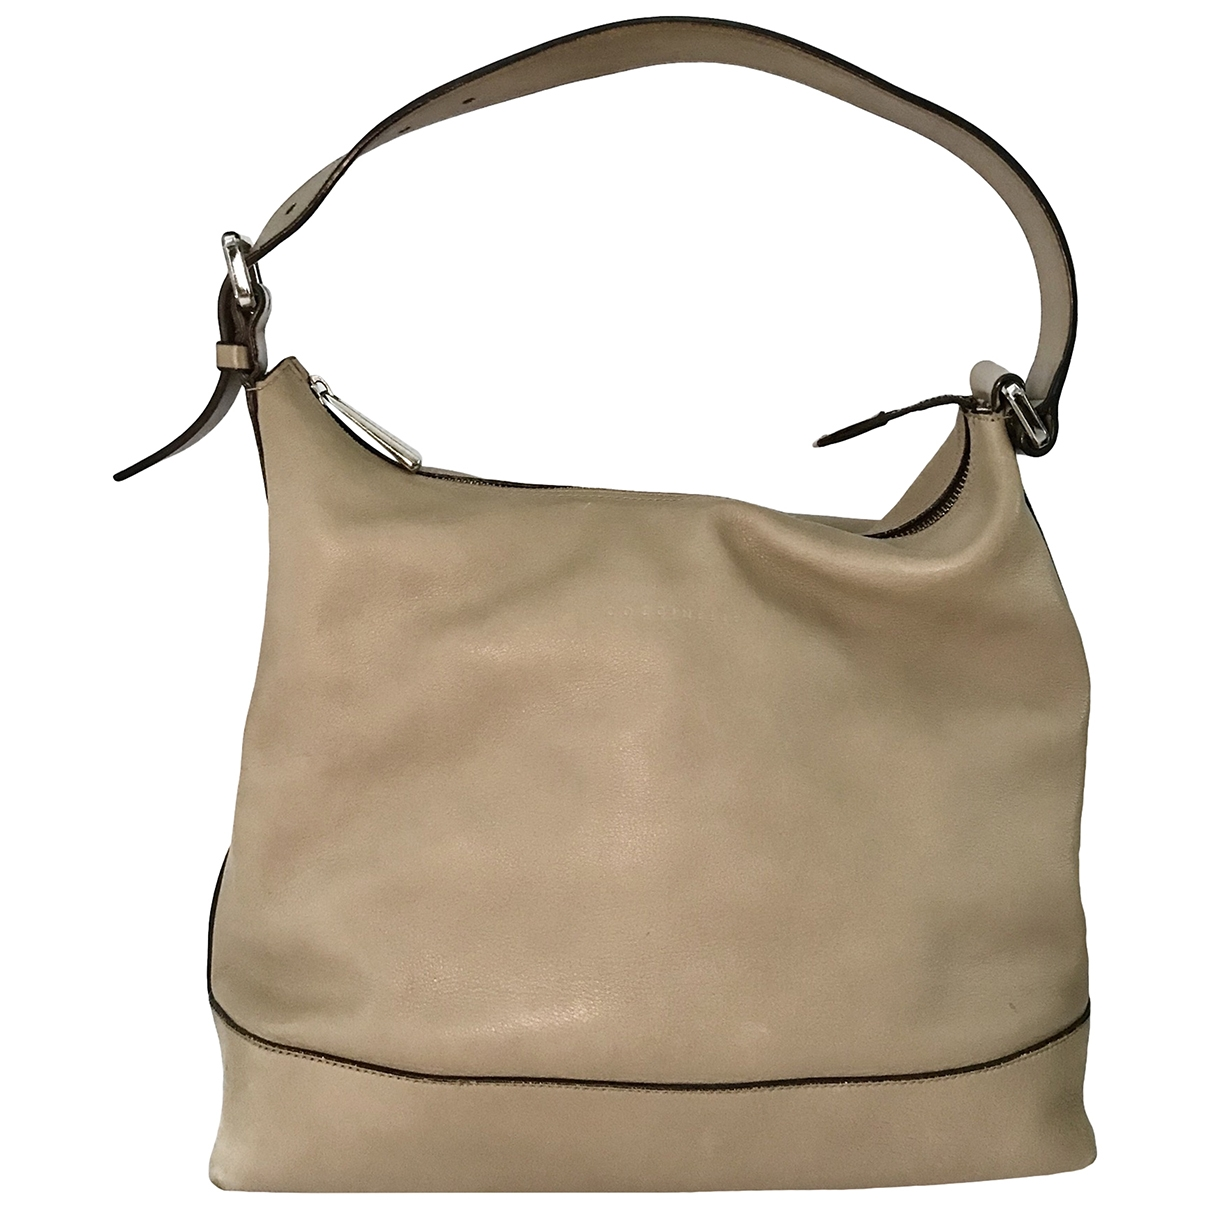 Coccinelle \N Beige Leather handbag for Women \N